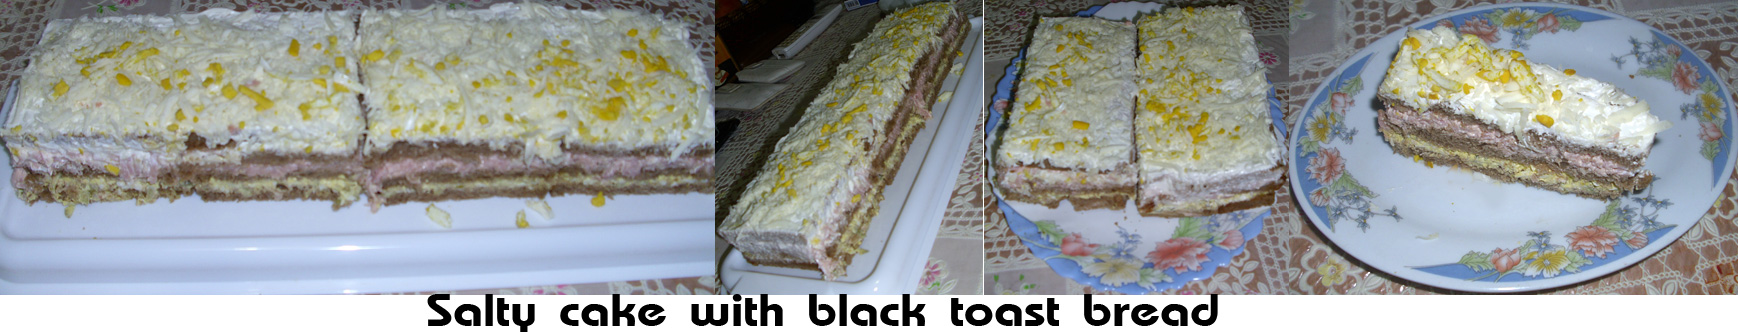 Salty cake with black toast bread (Slana torta sa crnim tost hlebom)